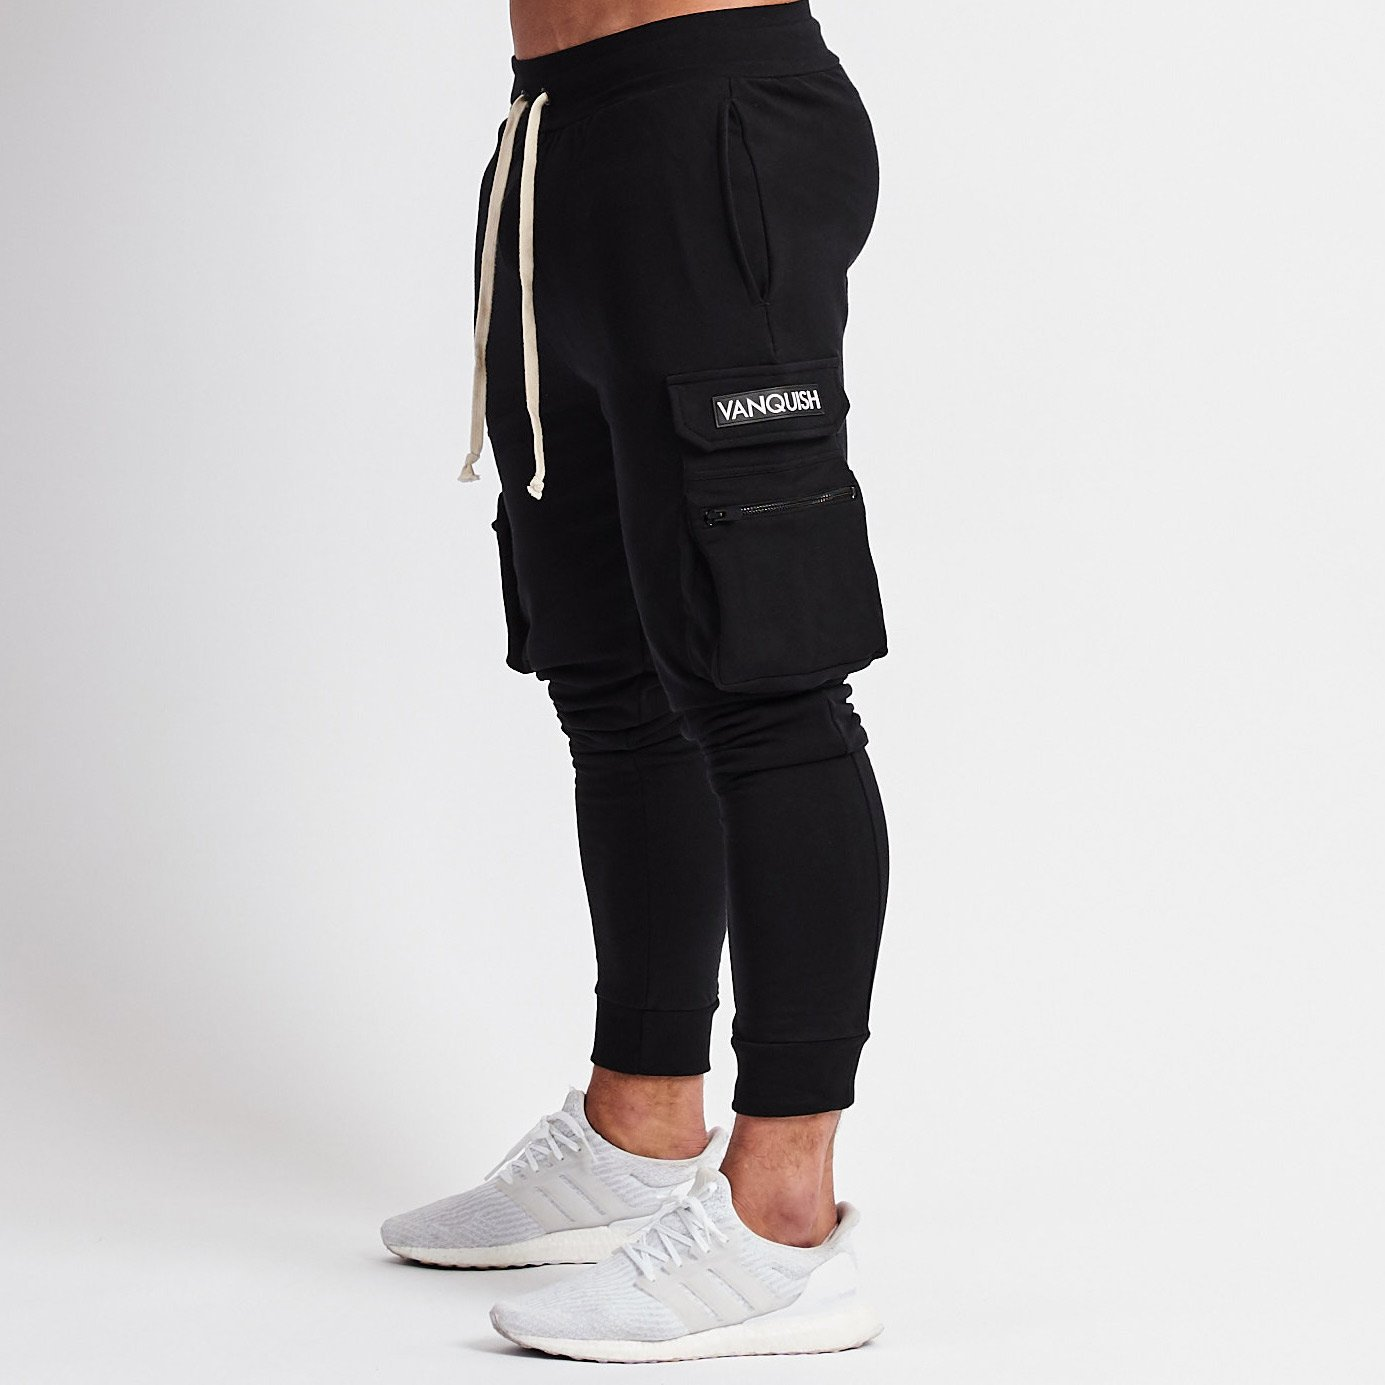 Jogger Pants New Style Overalls Men's Pure Cotton Leisure Running Fitness Pants Hip Hop Brand Pants Vanquish Japanese Pants 2019